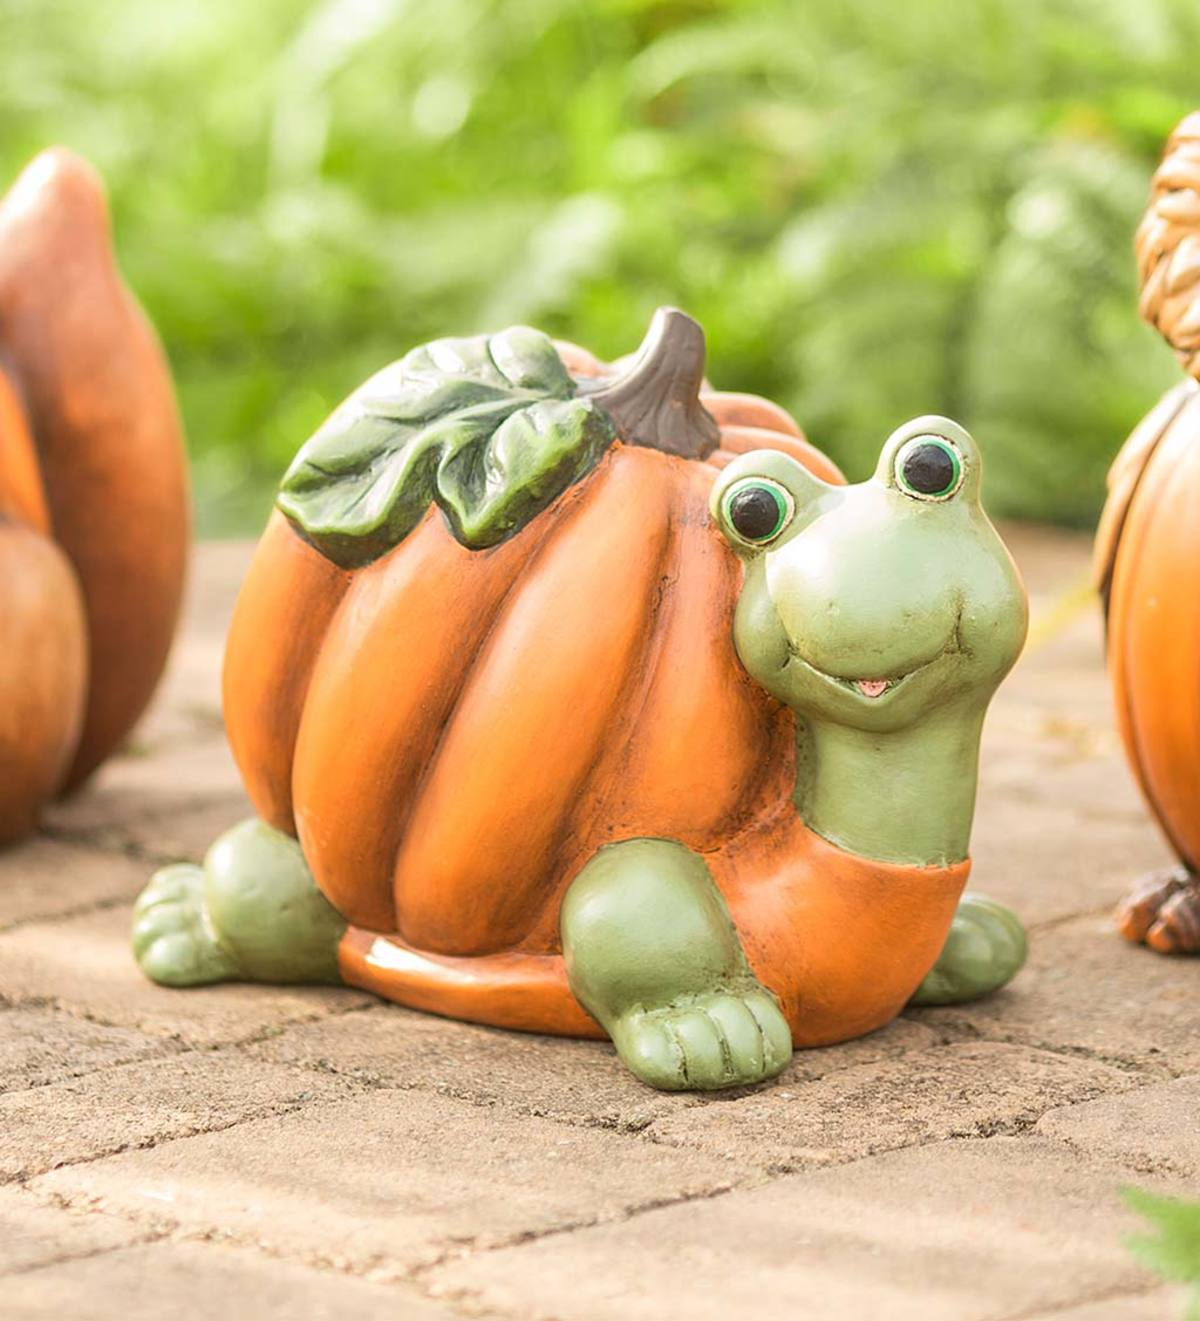 Pumpkin-Shelled Turtle Sculpture